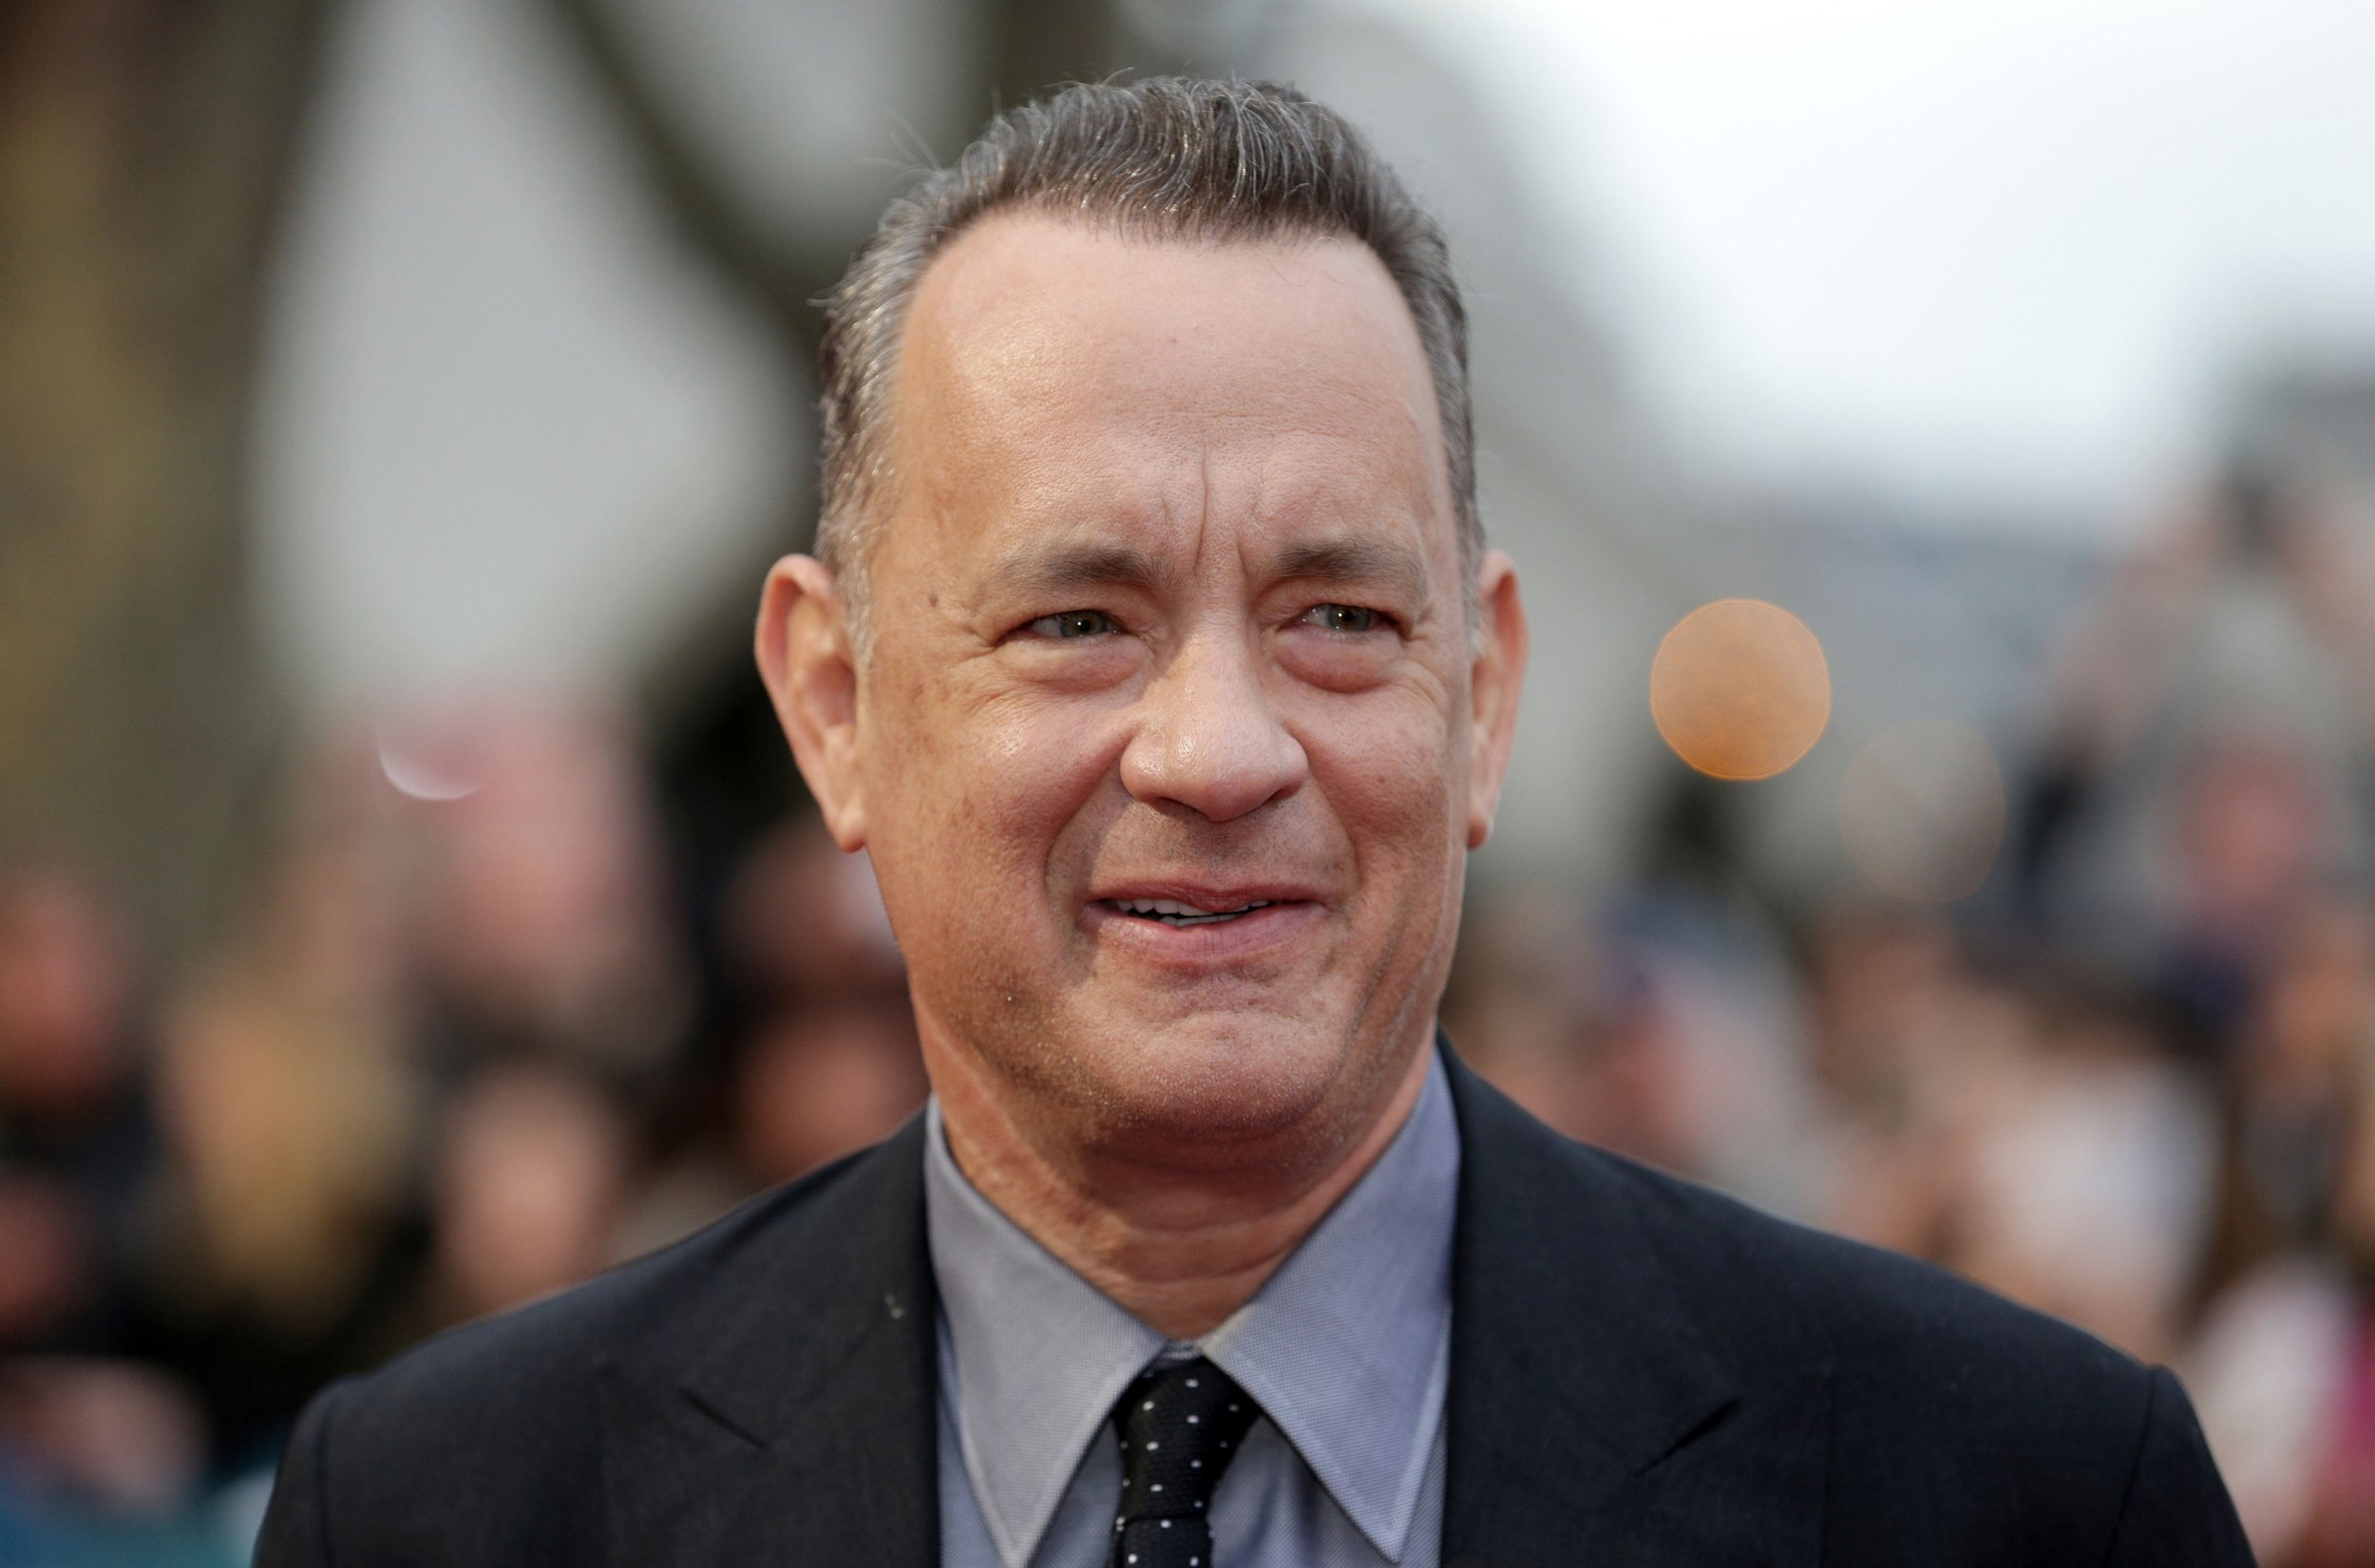 "File photo dated 25/04/16 of Tom Hanks. PRESS ASSOCIATION Photo. Issue date: Saturday May 14, 2016. ""I put 100 quid on Leicester so I think I'll do okay."" Tom Hanks emerges as an unlikely Nostradamus. See PA story SOCCER Premier League Quotes. Photo credit should read Daniel Leal-Olivas/PA Wire"